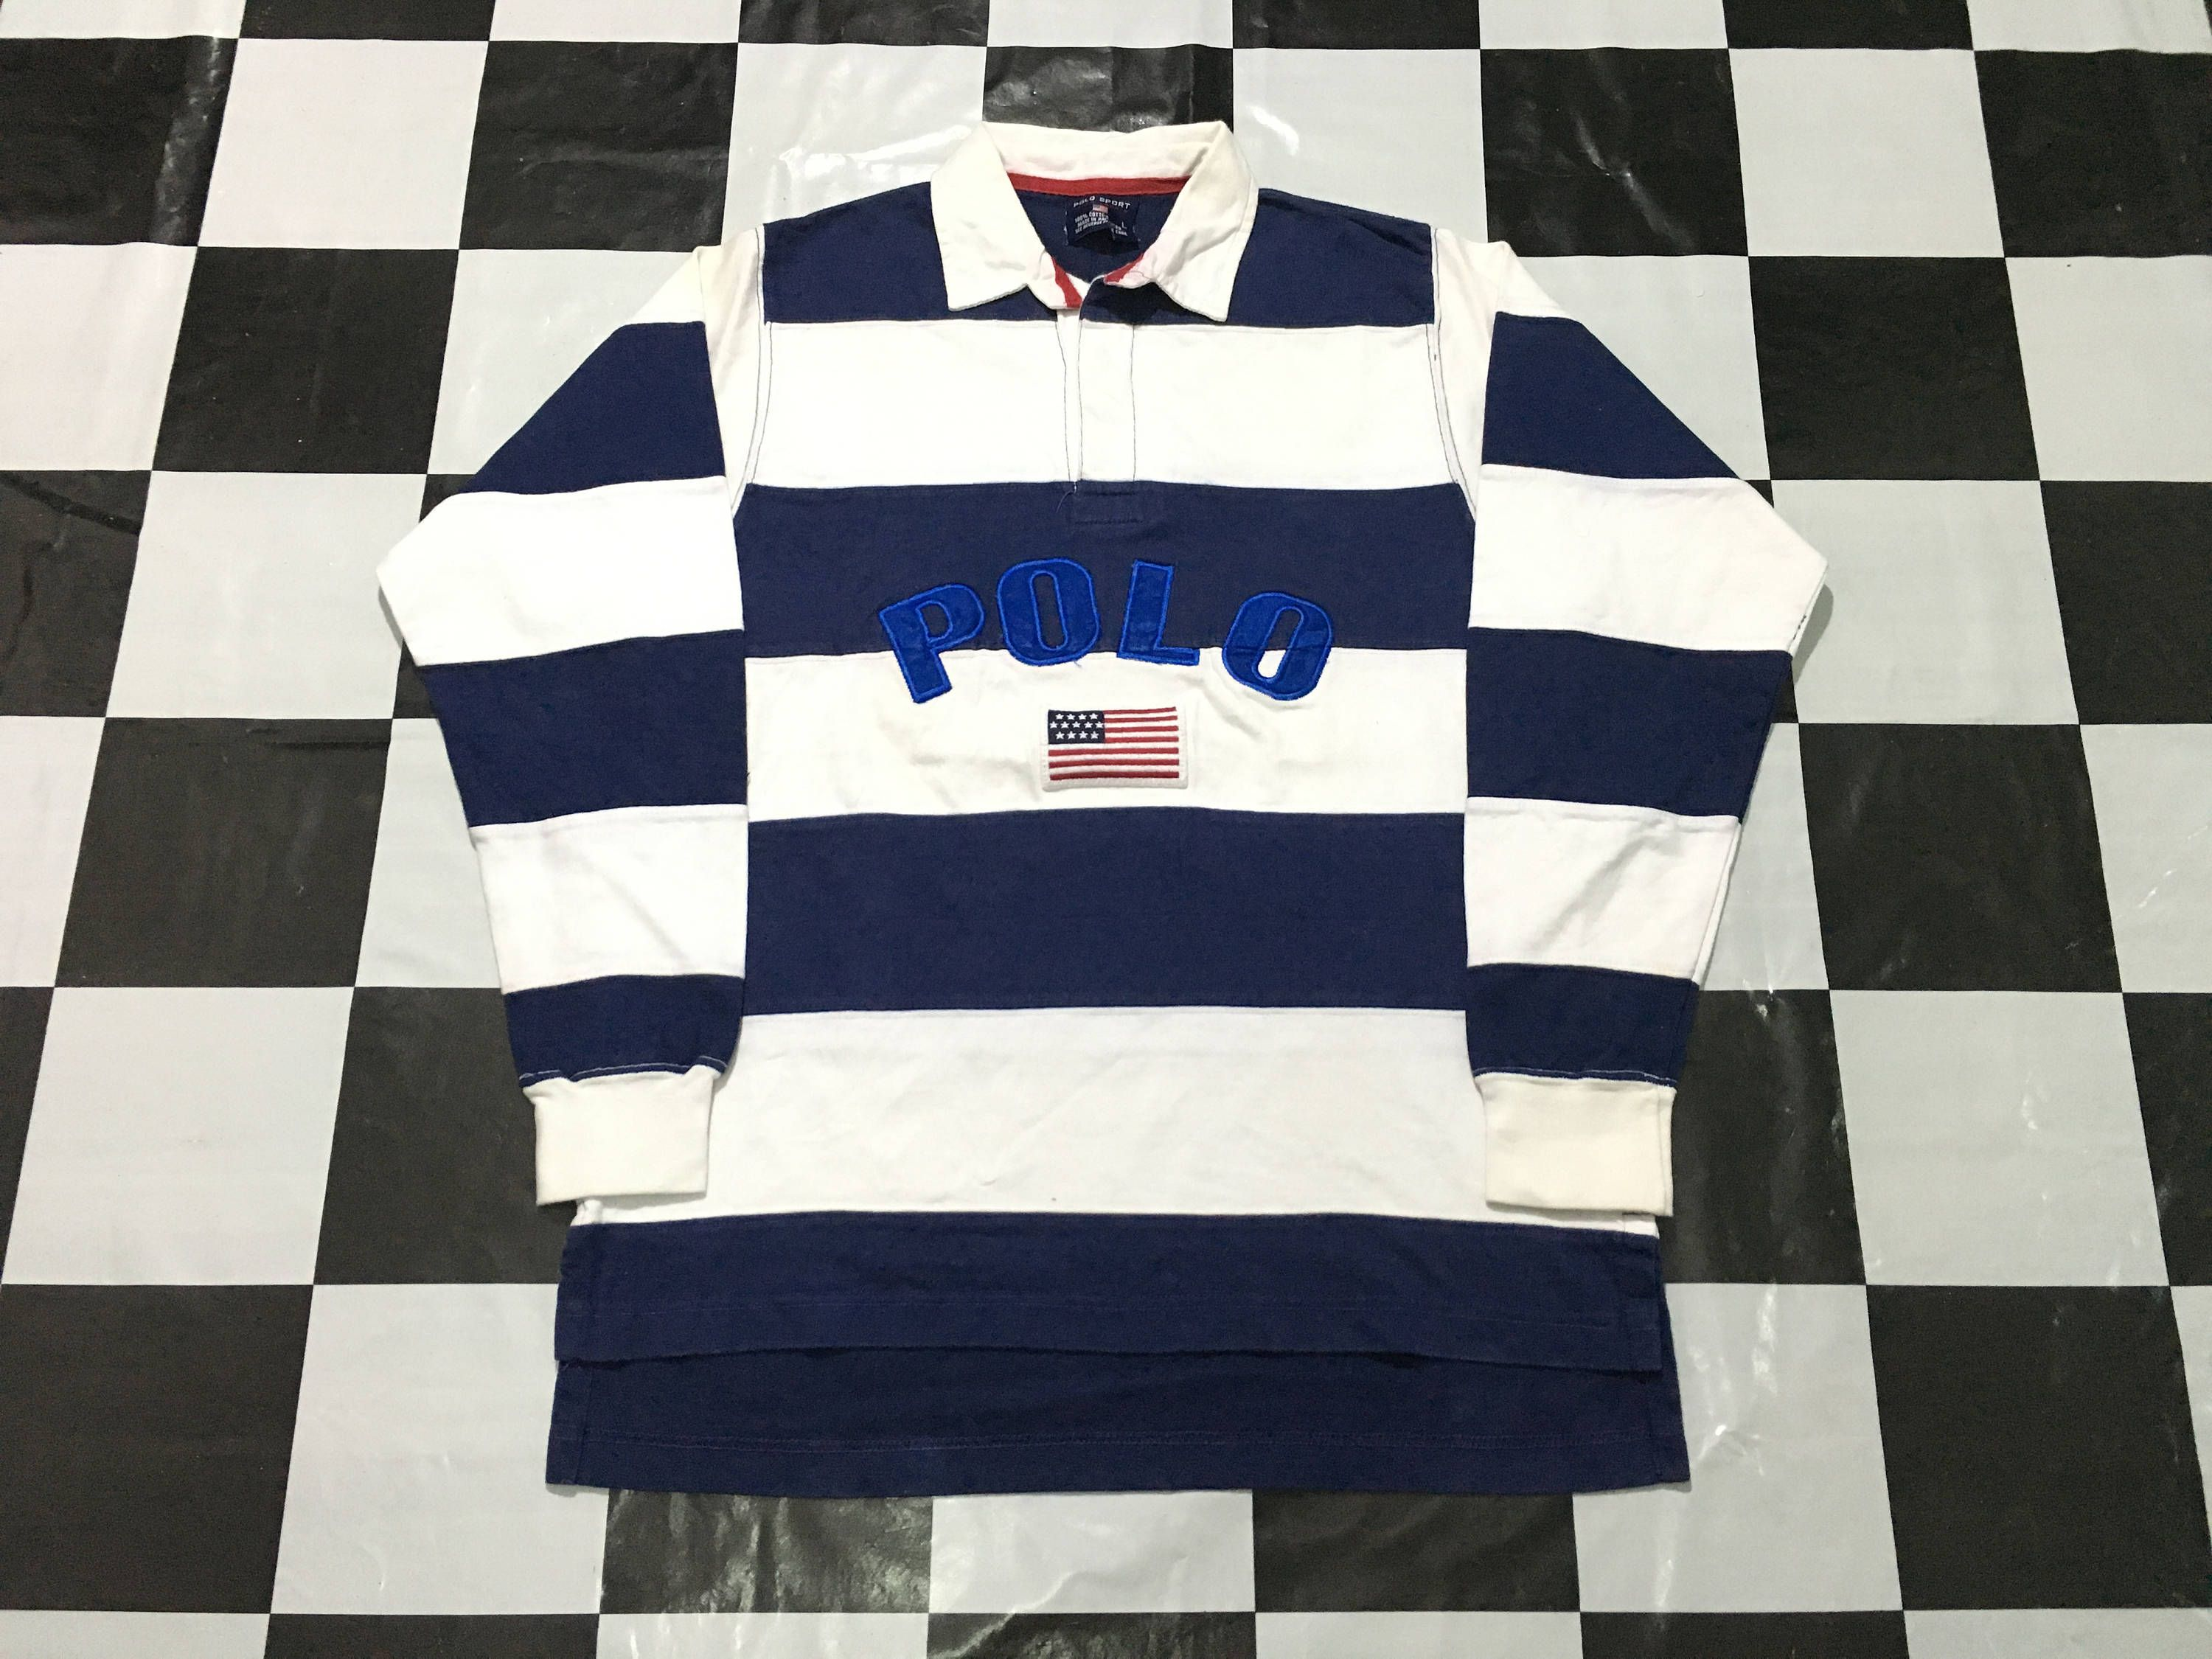 59b2b6a5ff6 Vintage Polo sport rugby shirt striped long sleeve spell out embroidered  flag logo Size L by AlivevintageShop on Etsy